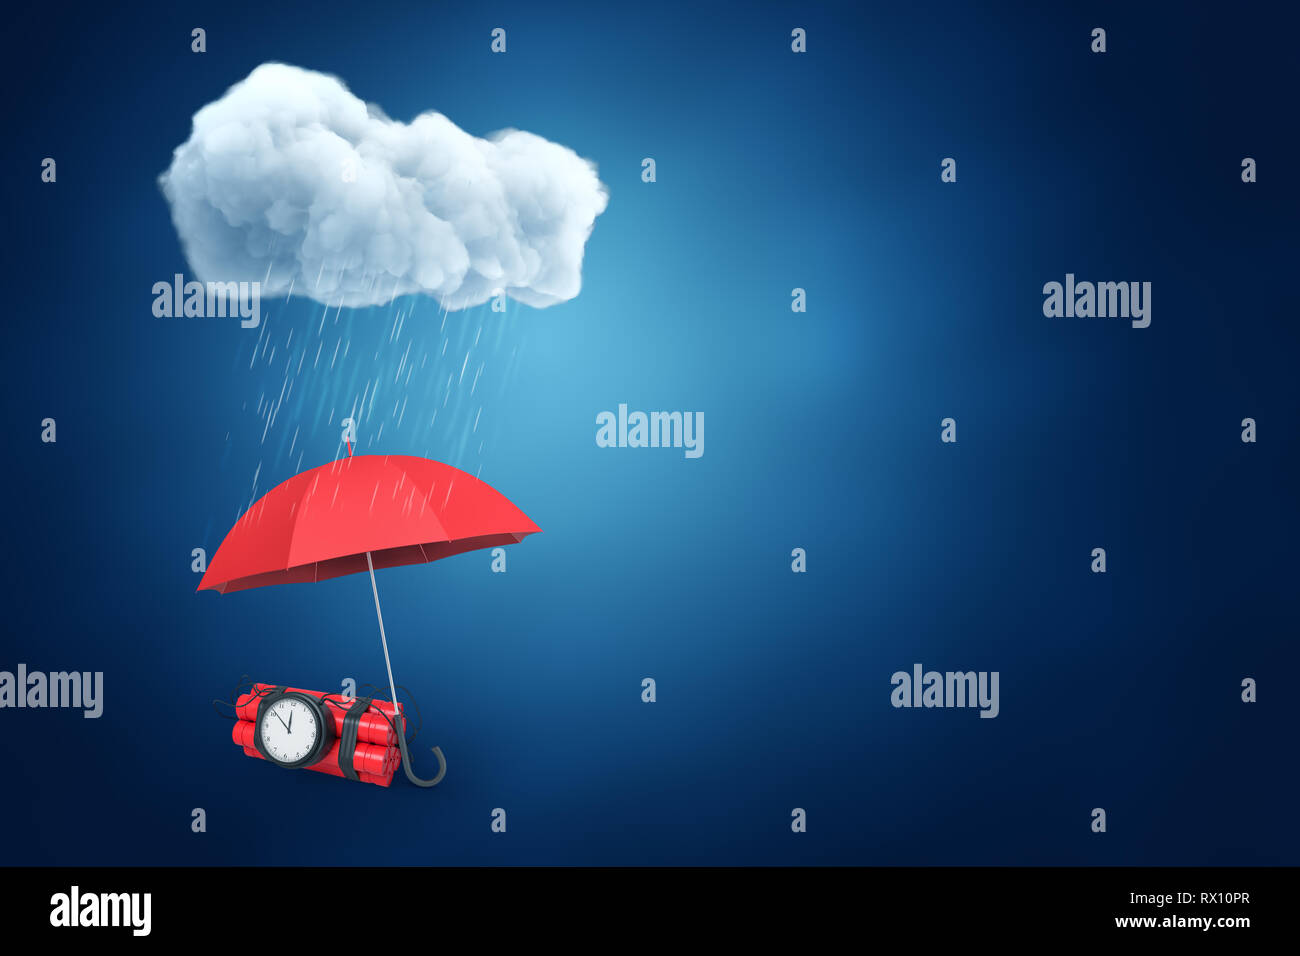 183762998568c 3d rendering of an umbrella protecting the bundle of dynamite with a time  bomb from the